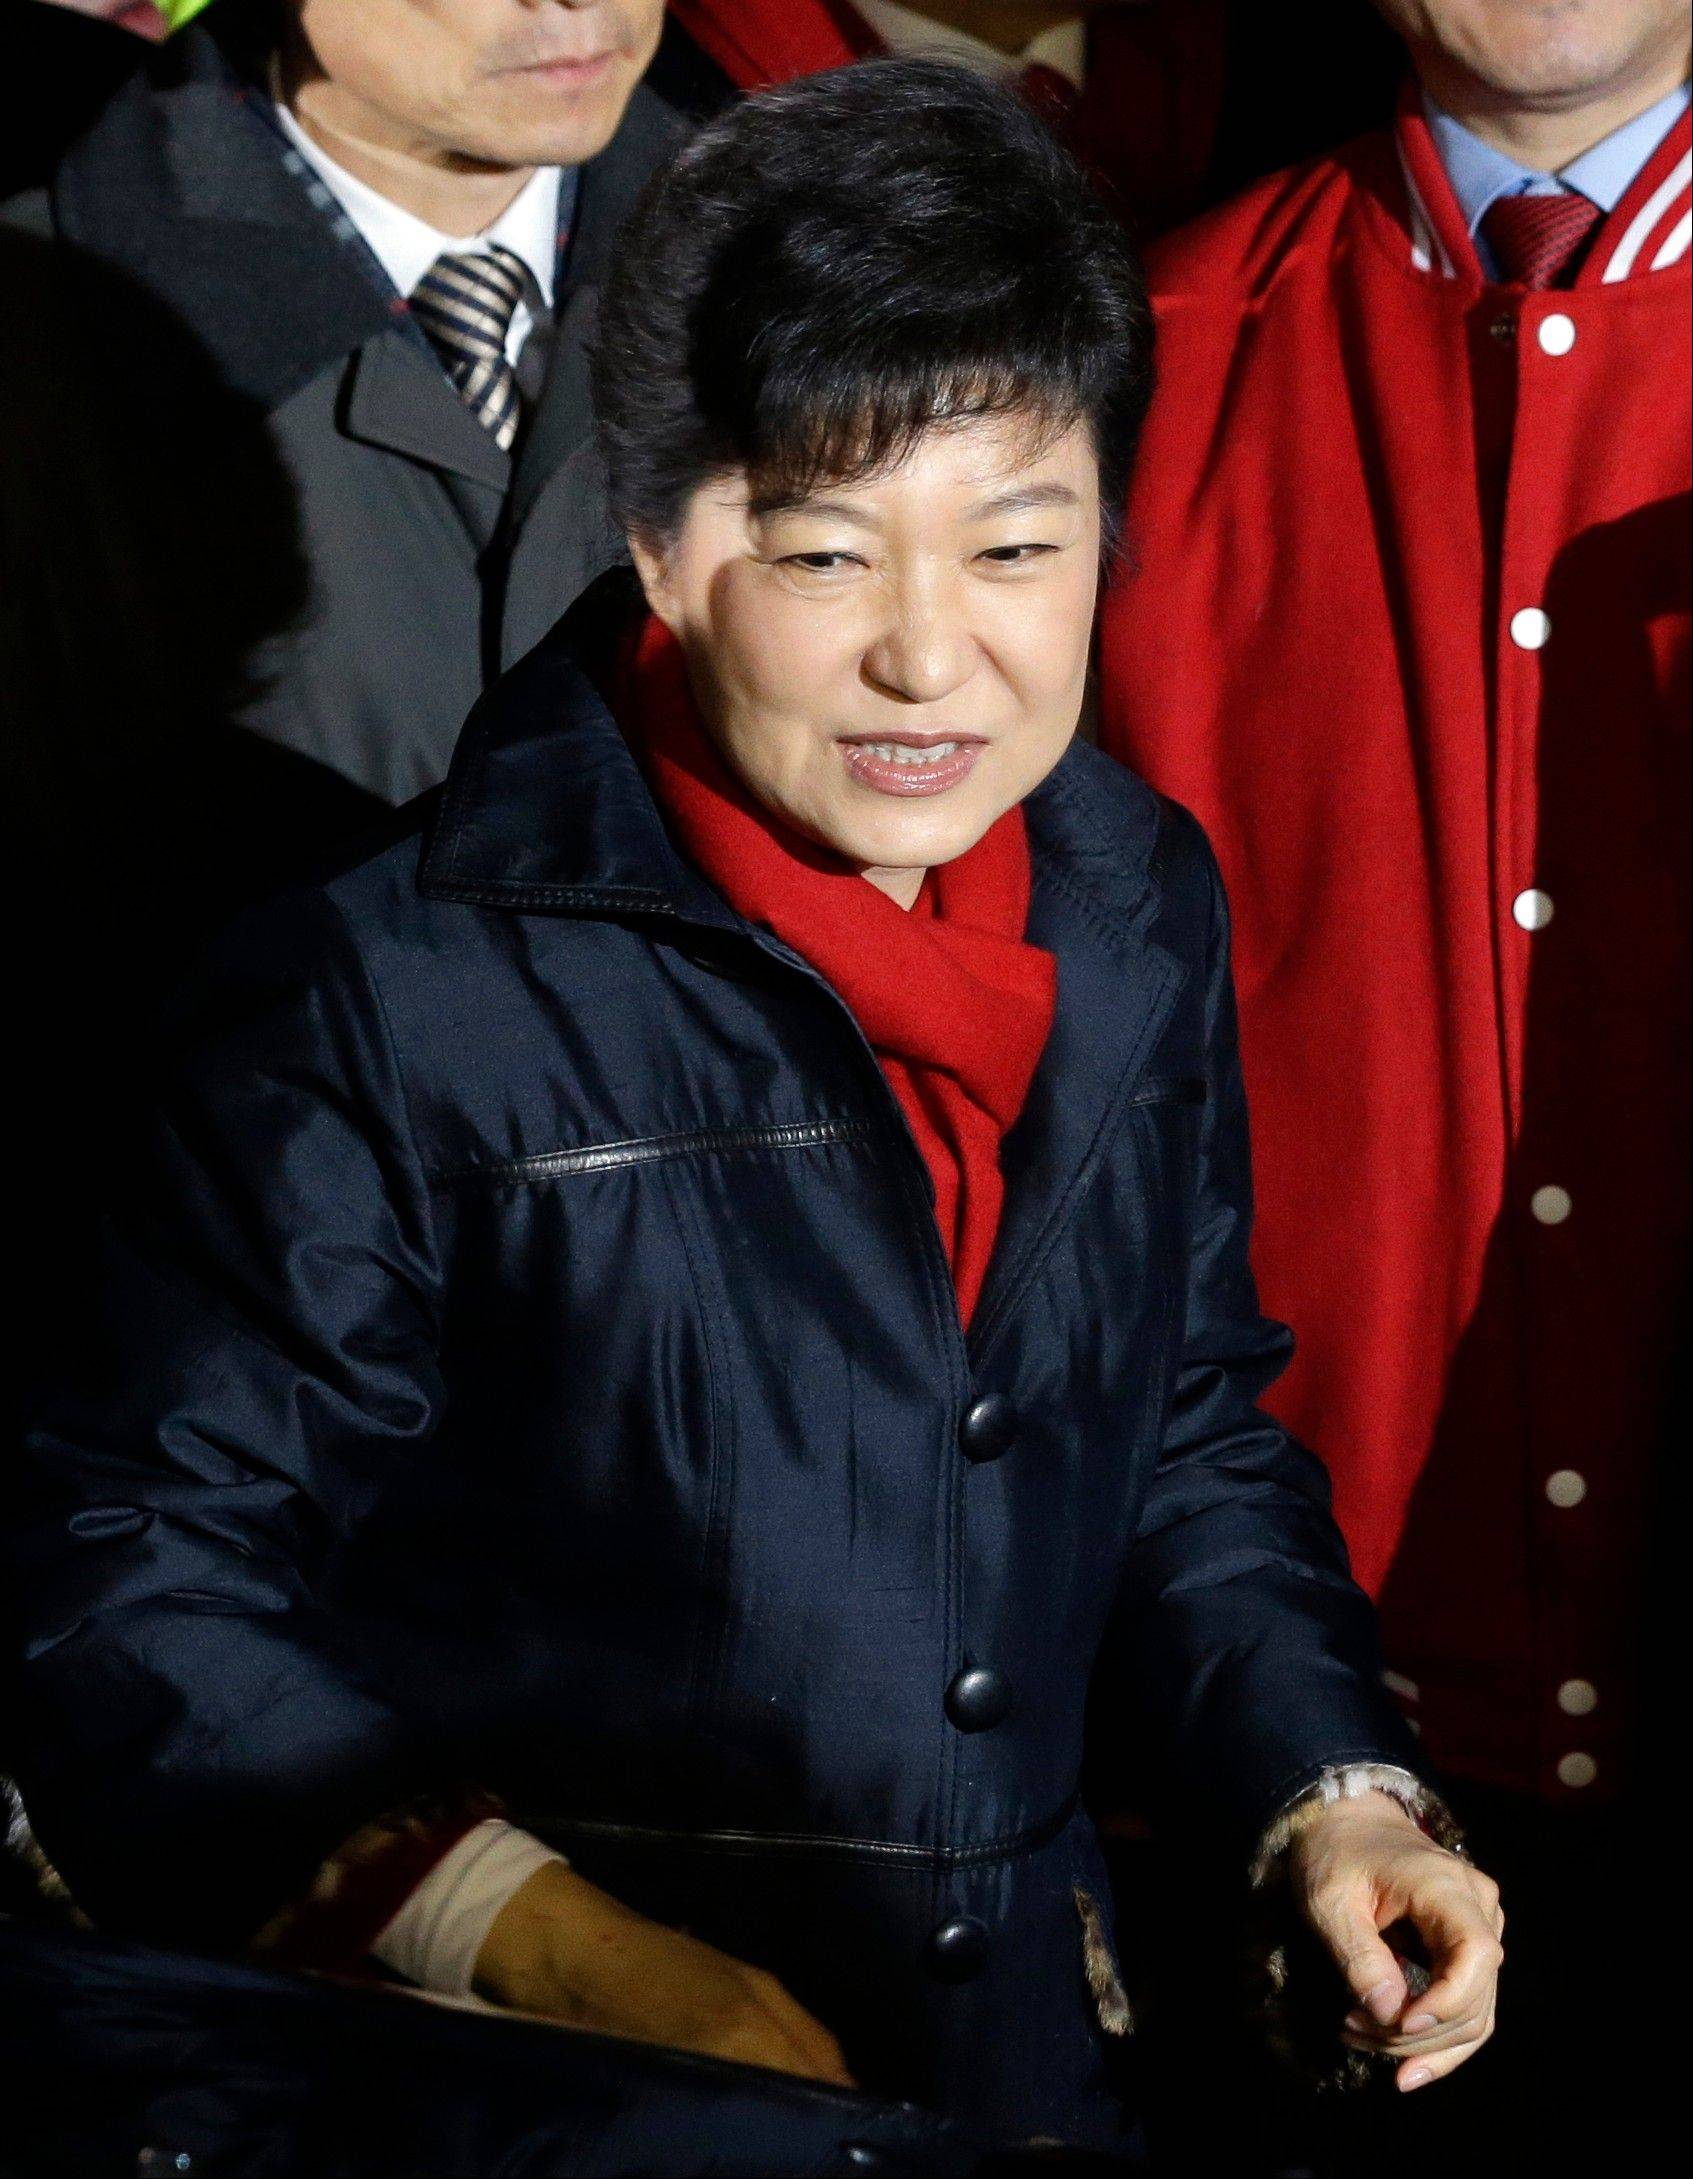 Ruling-party candidate Park Geun-hye was elected South Korean president Wednesday, becoming the country's first female leader despite the incumbent's unpopularity and her own past as the daughter of a divisive dictator.